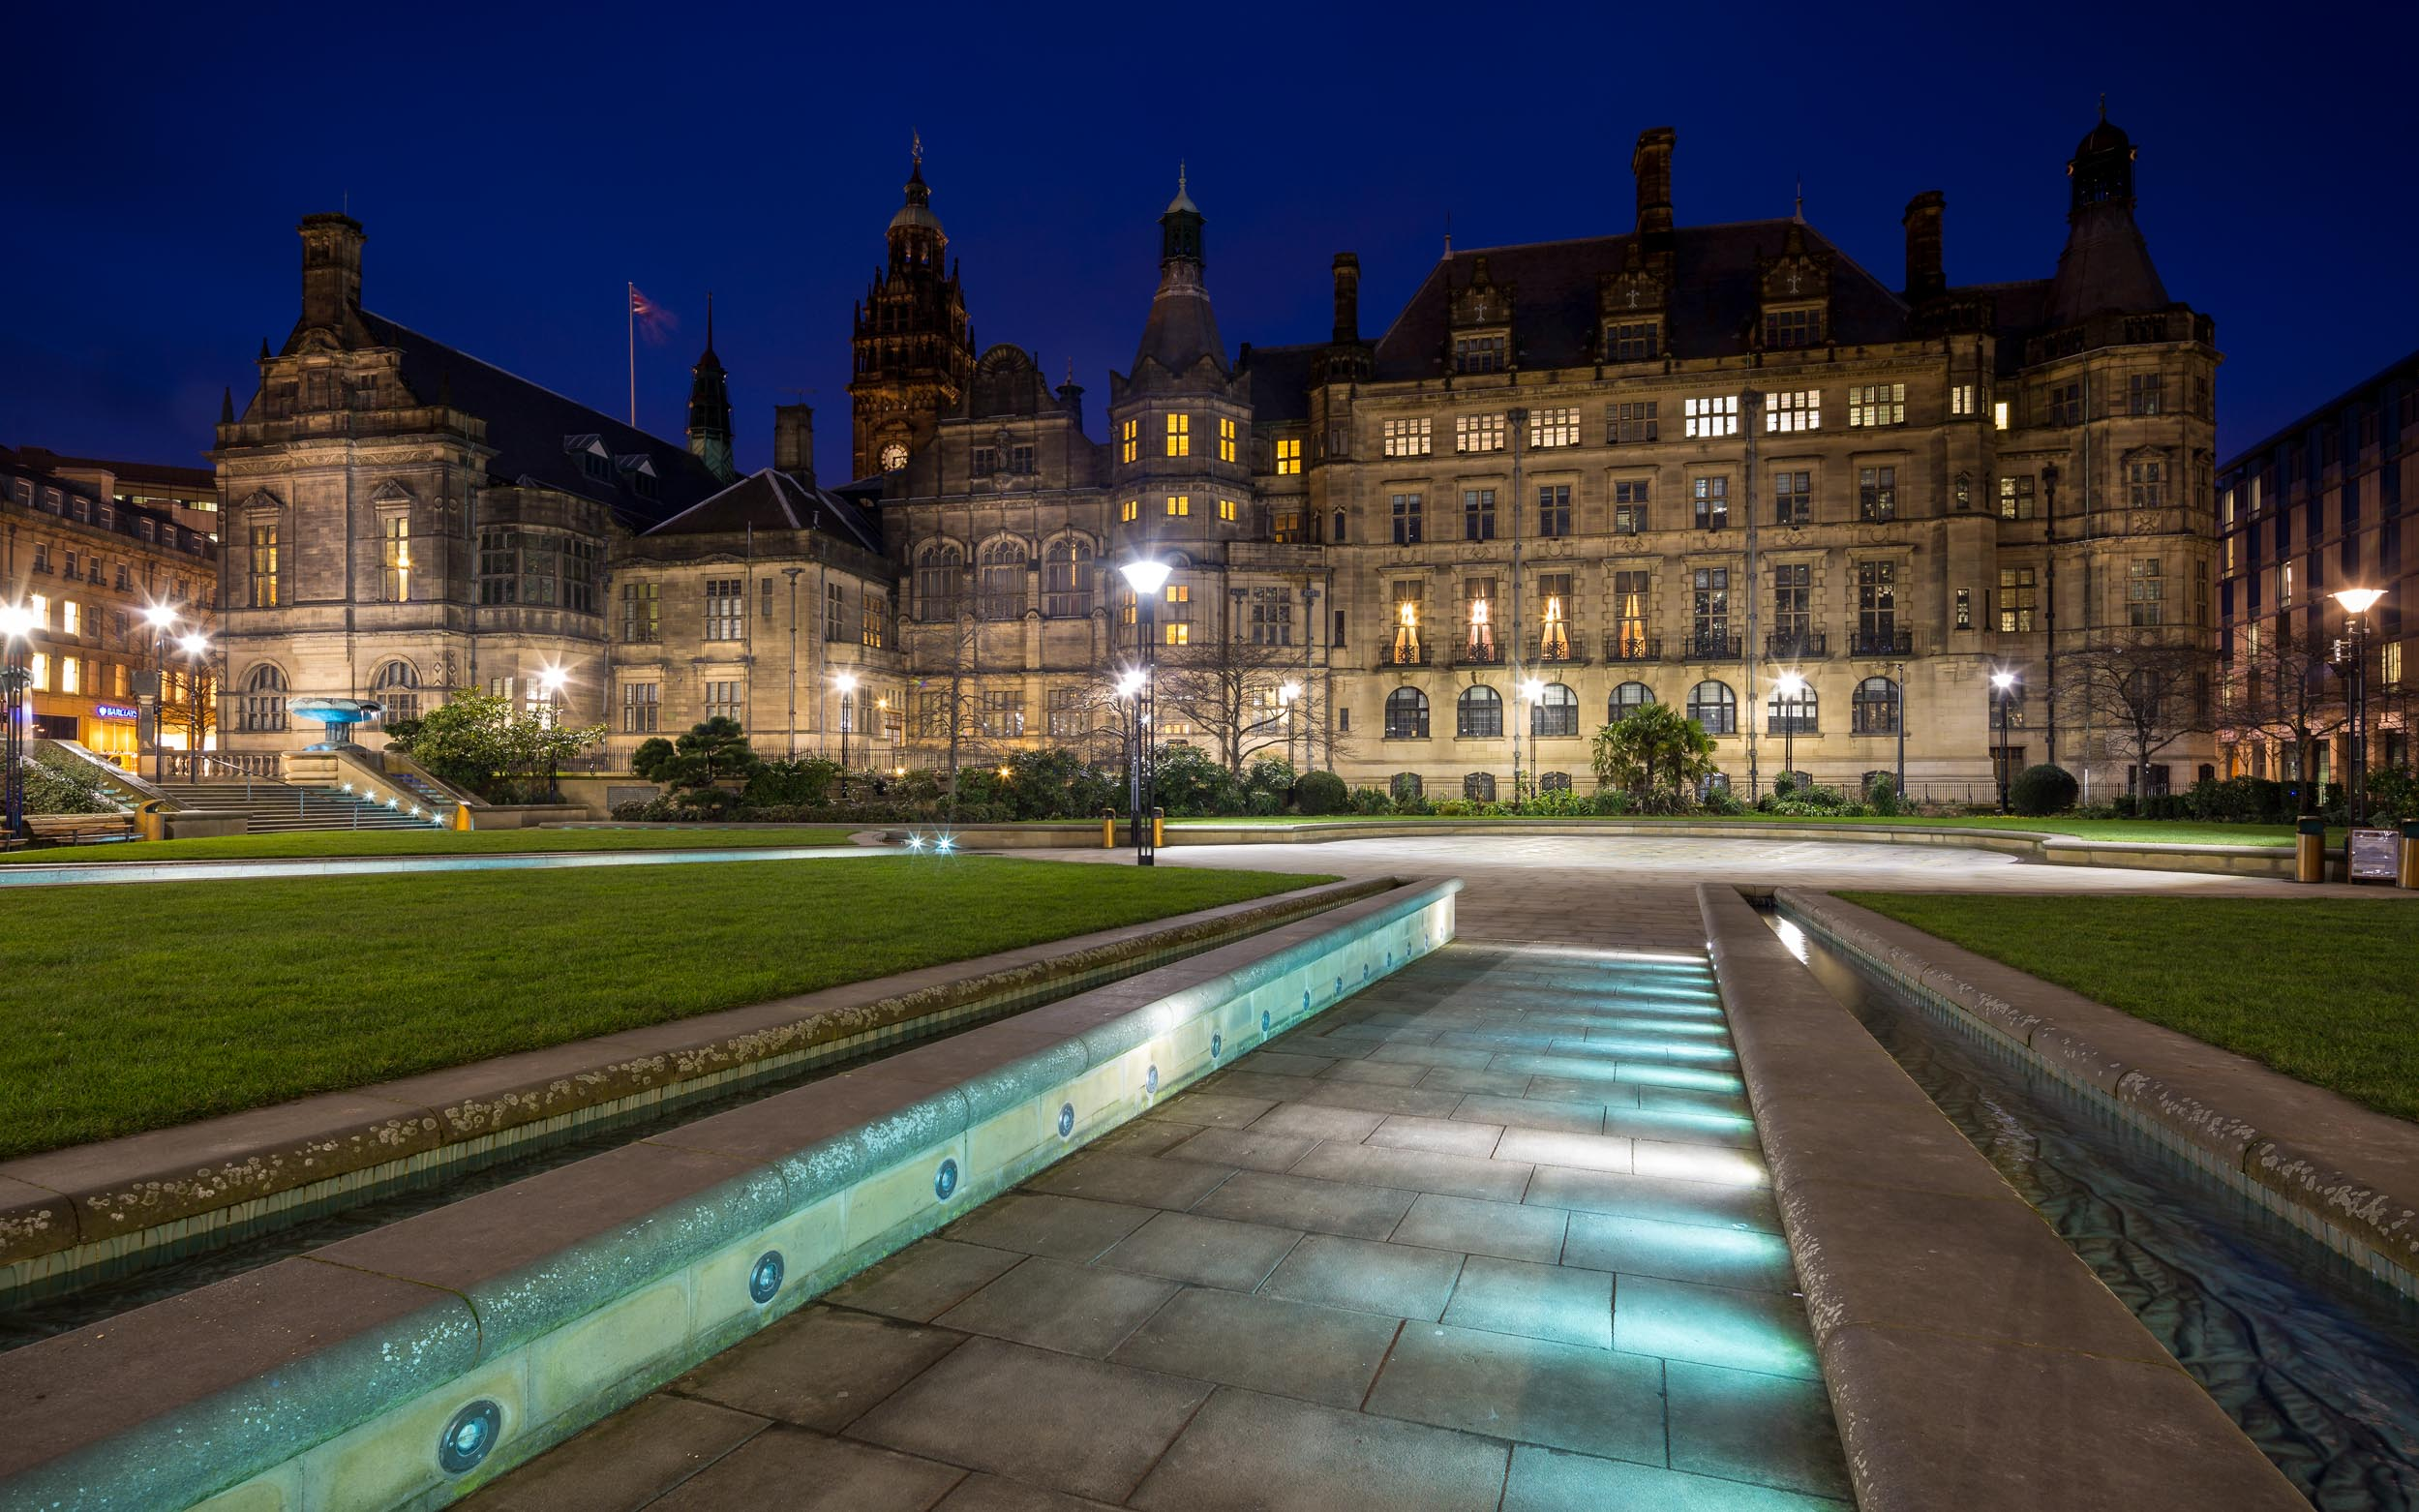 sheffield town hall architectural exterior.jpg